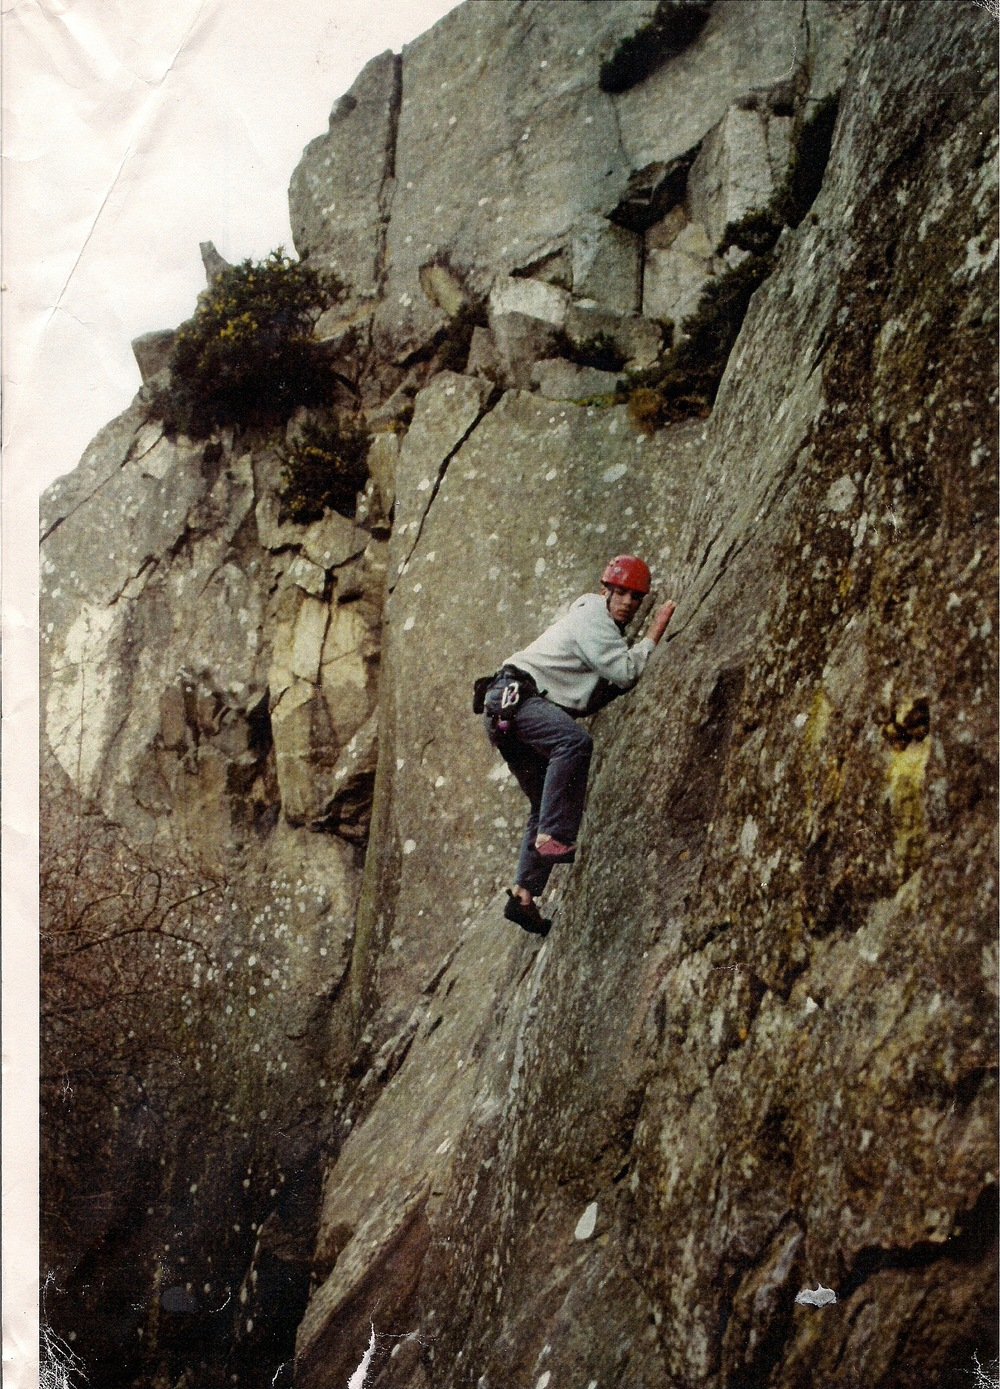 A younger self solo-ing in Dalkey quarry, E1 and no idea of the name (I've never really cared for names on forgettable routes). Glad to see I had sense to wear a helmet,  especially after the last link !